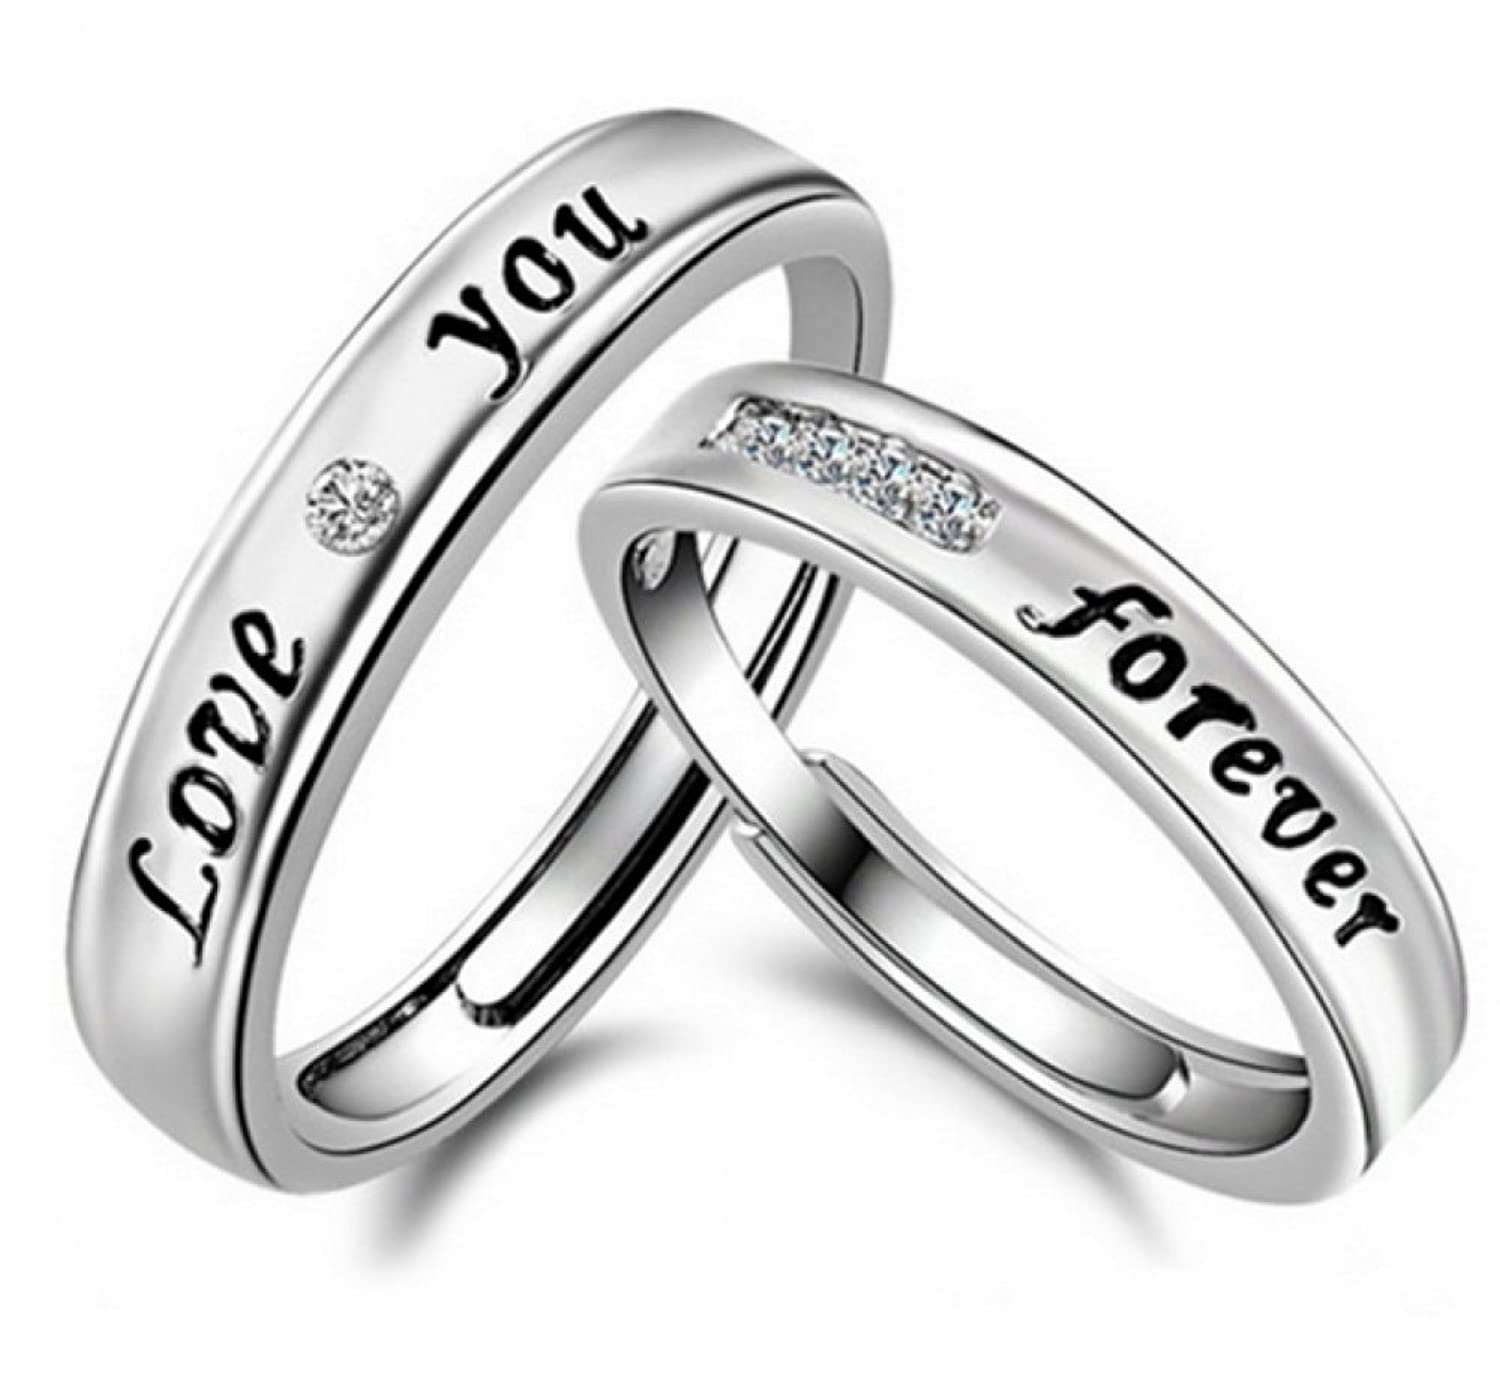 preowned rings cartier jewellery image love ring